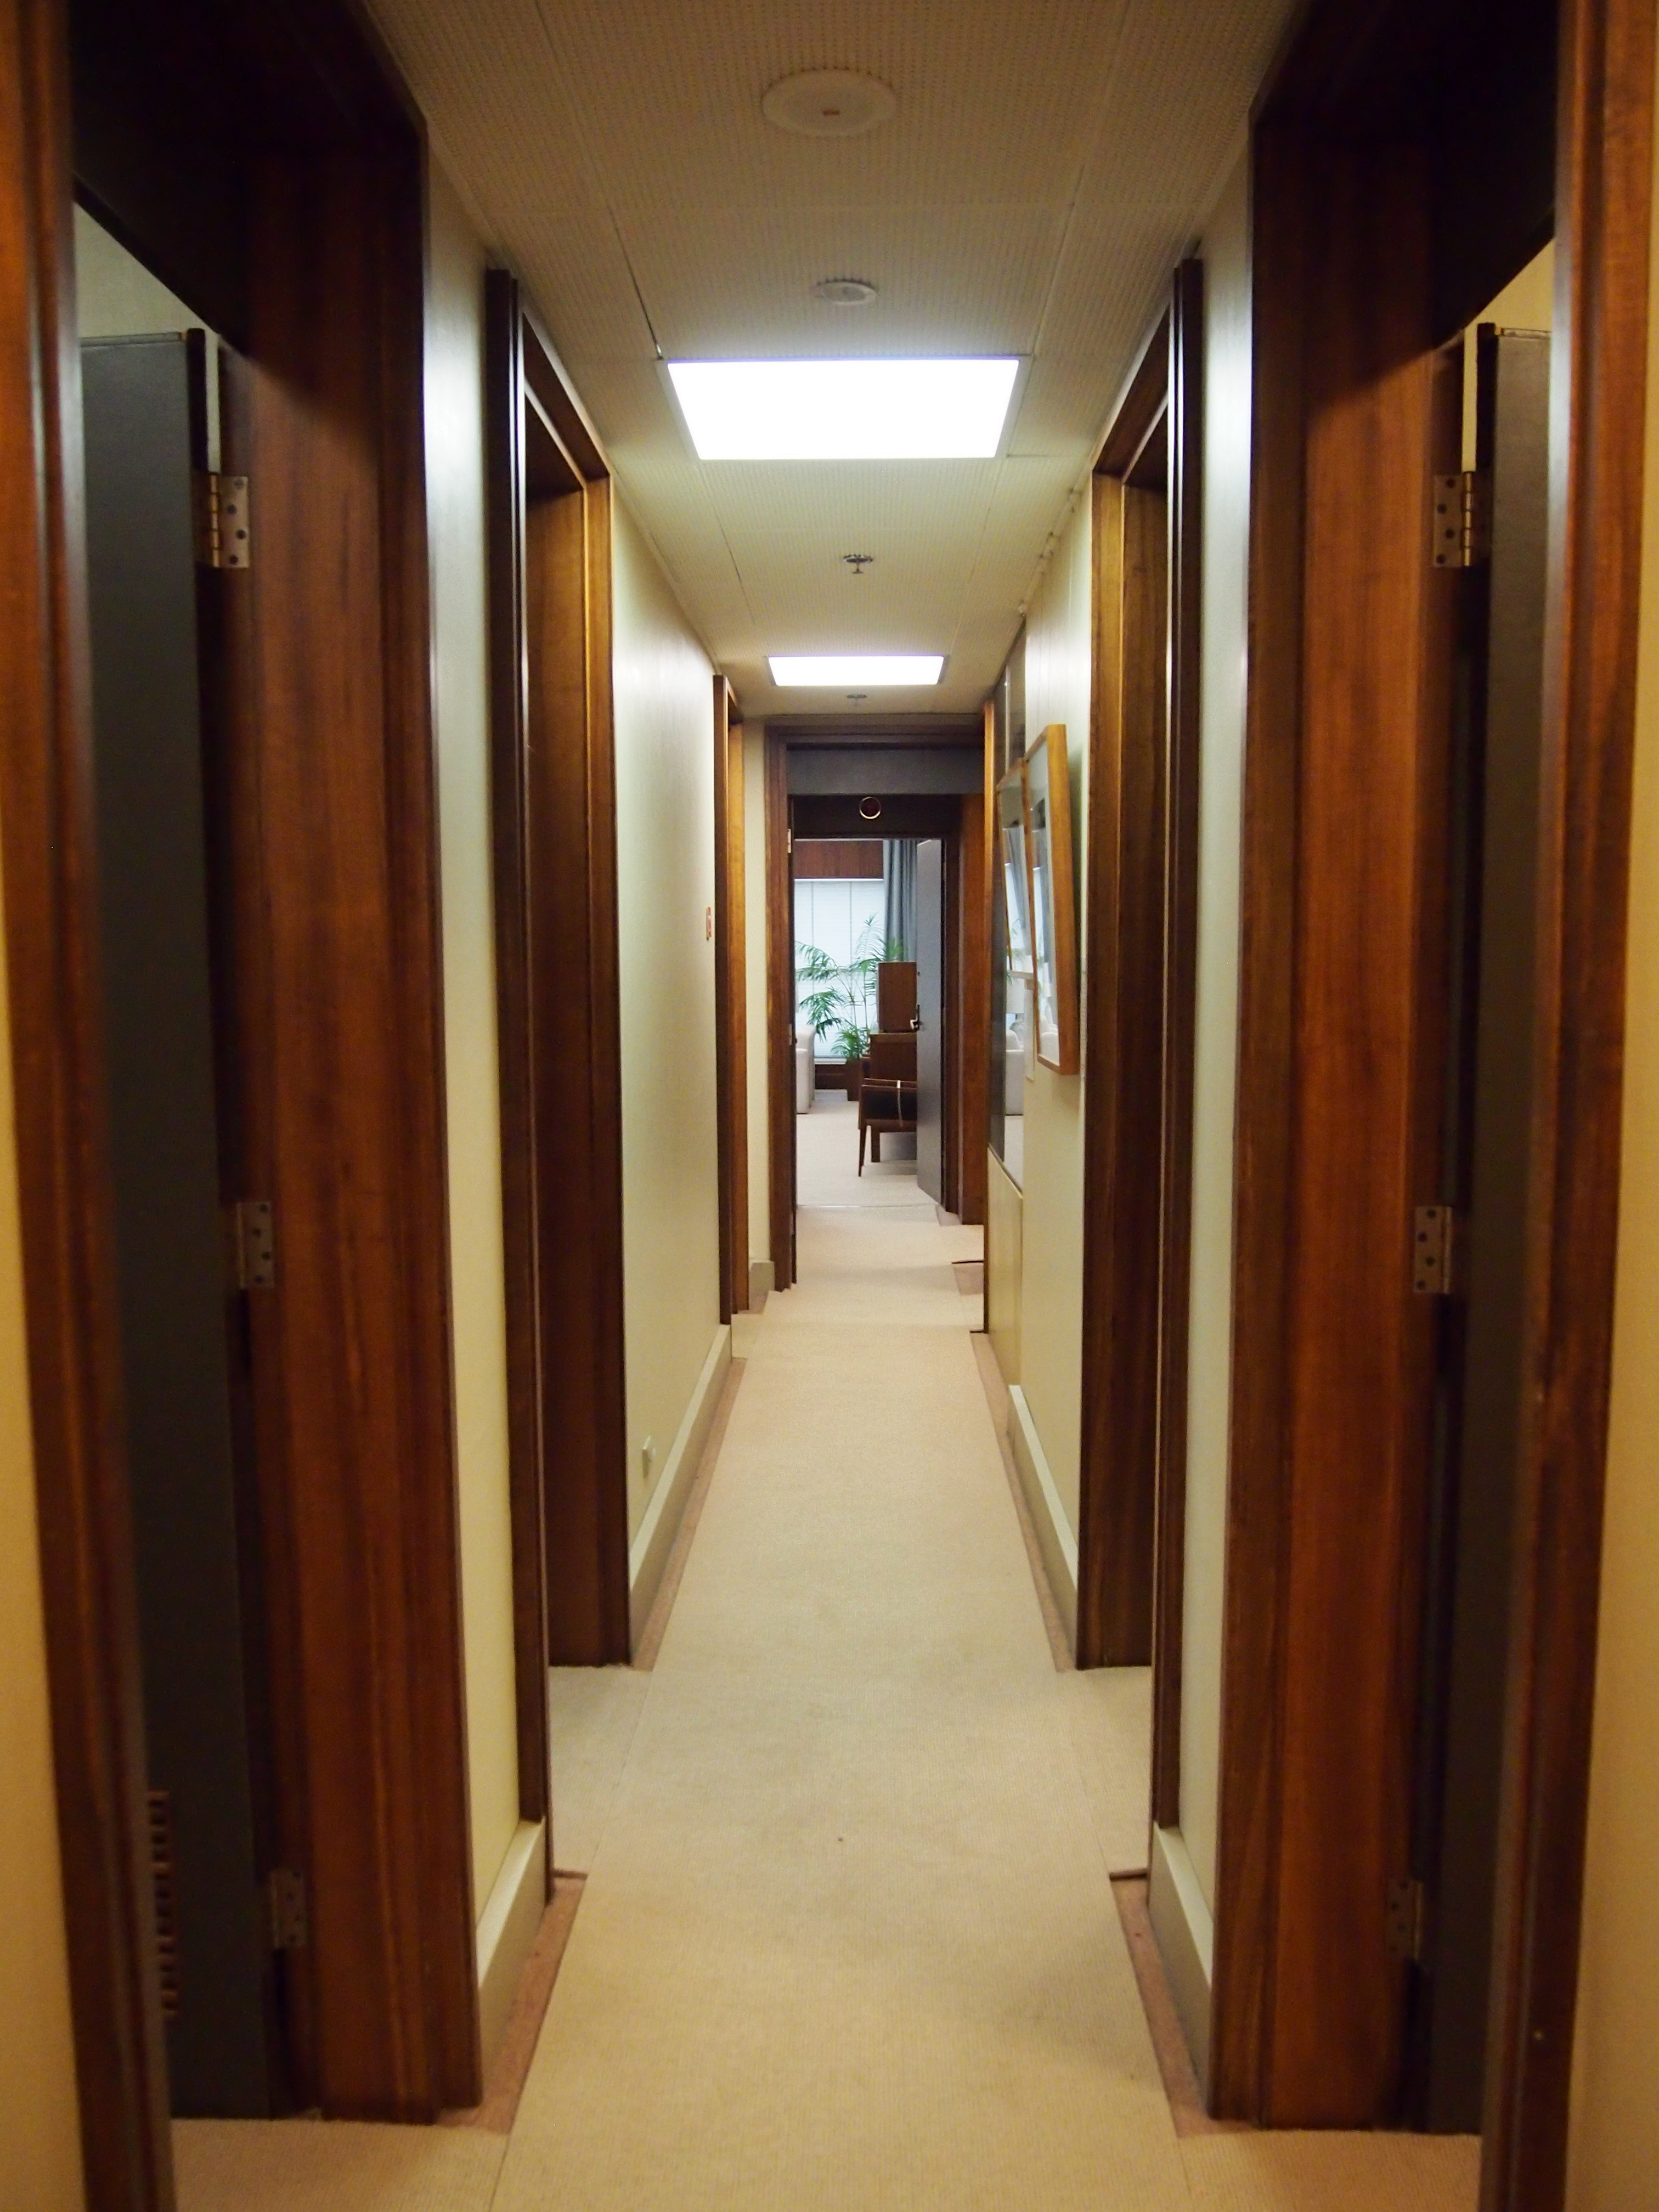 FileHallway In The PMs Suite At Old Parliament House